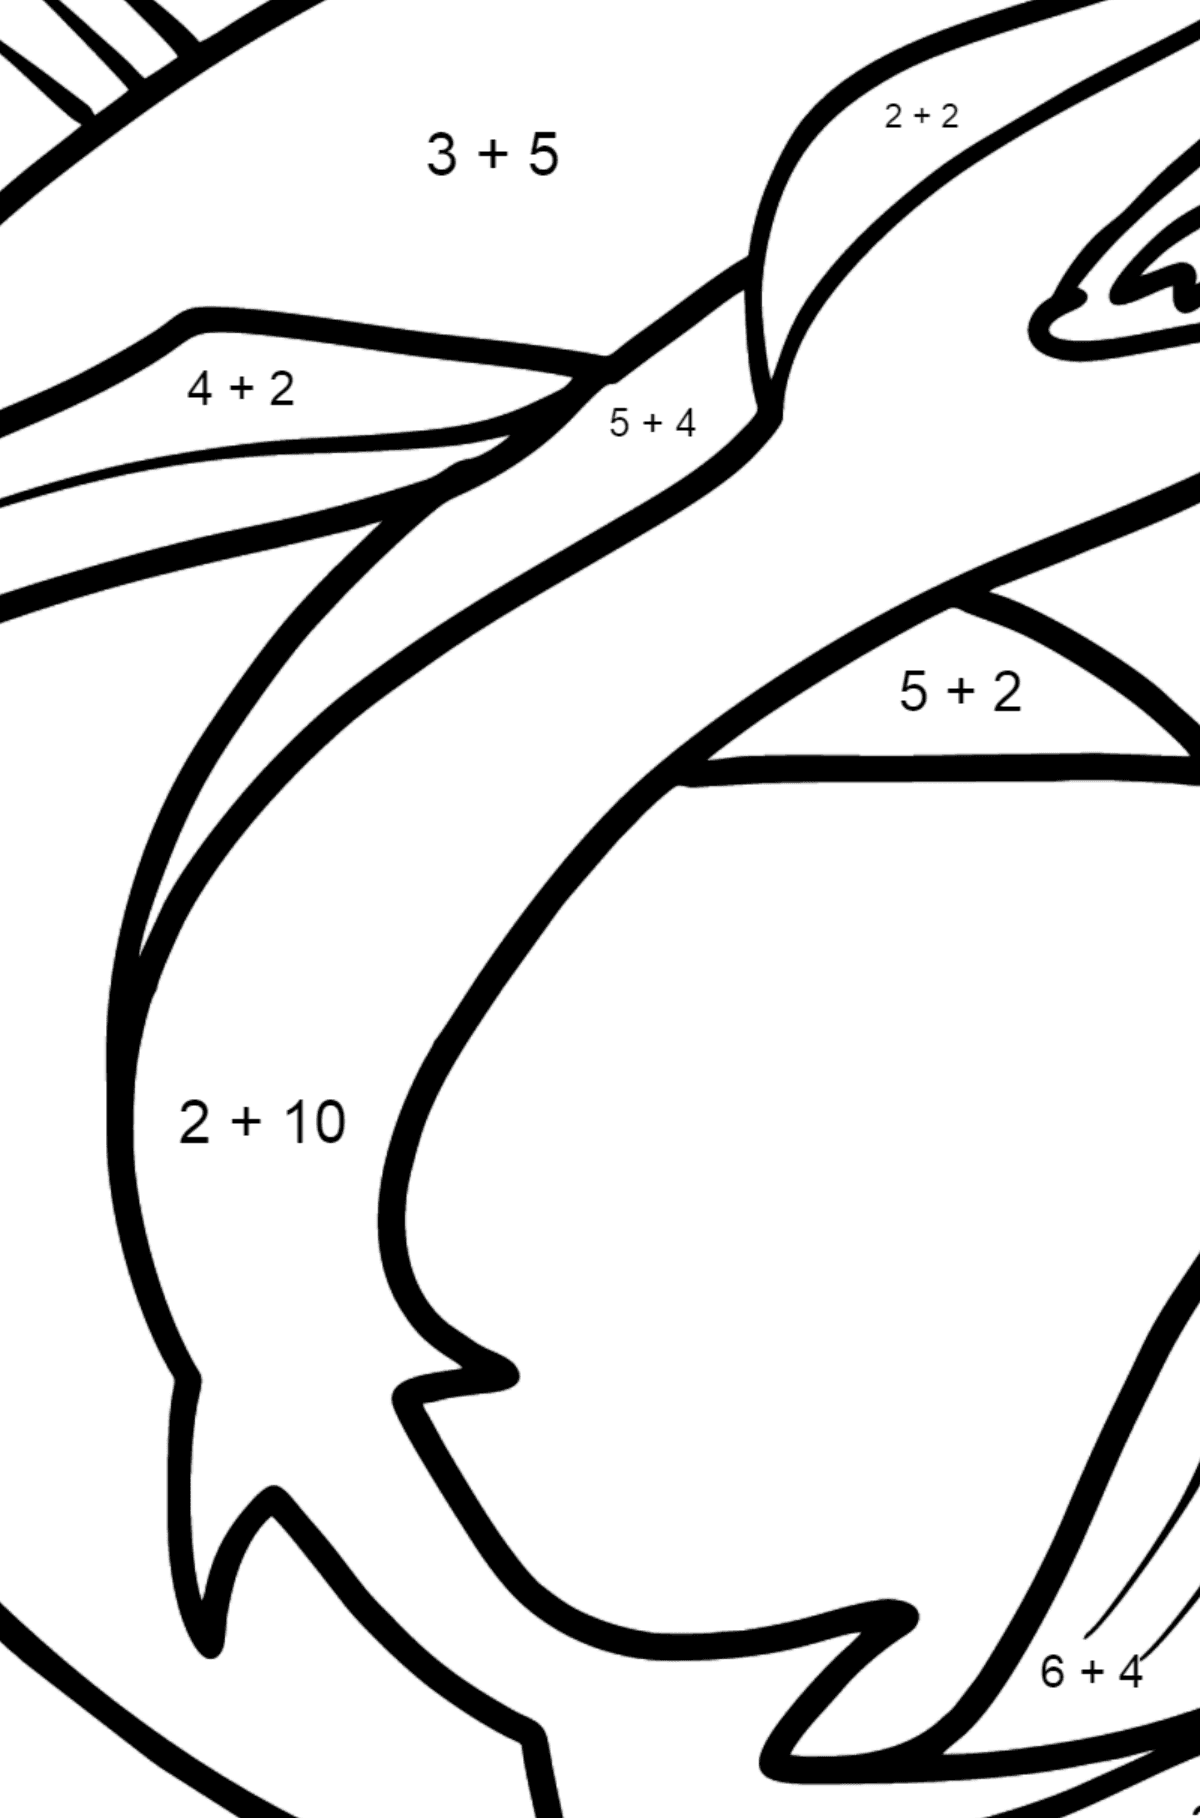 Shark coloring page - Math Coloring - Addition for Kids